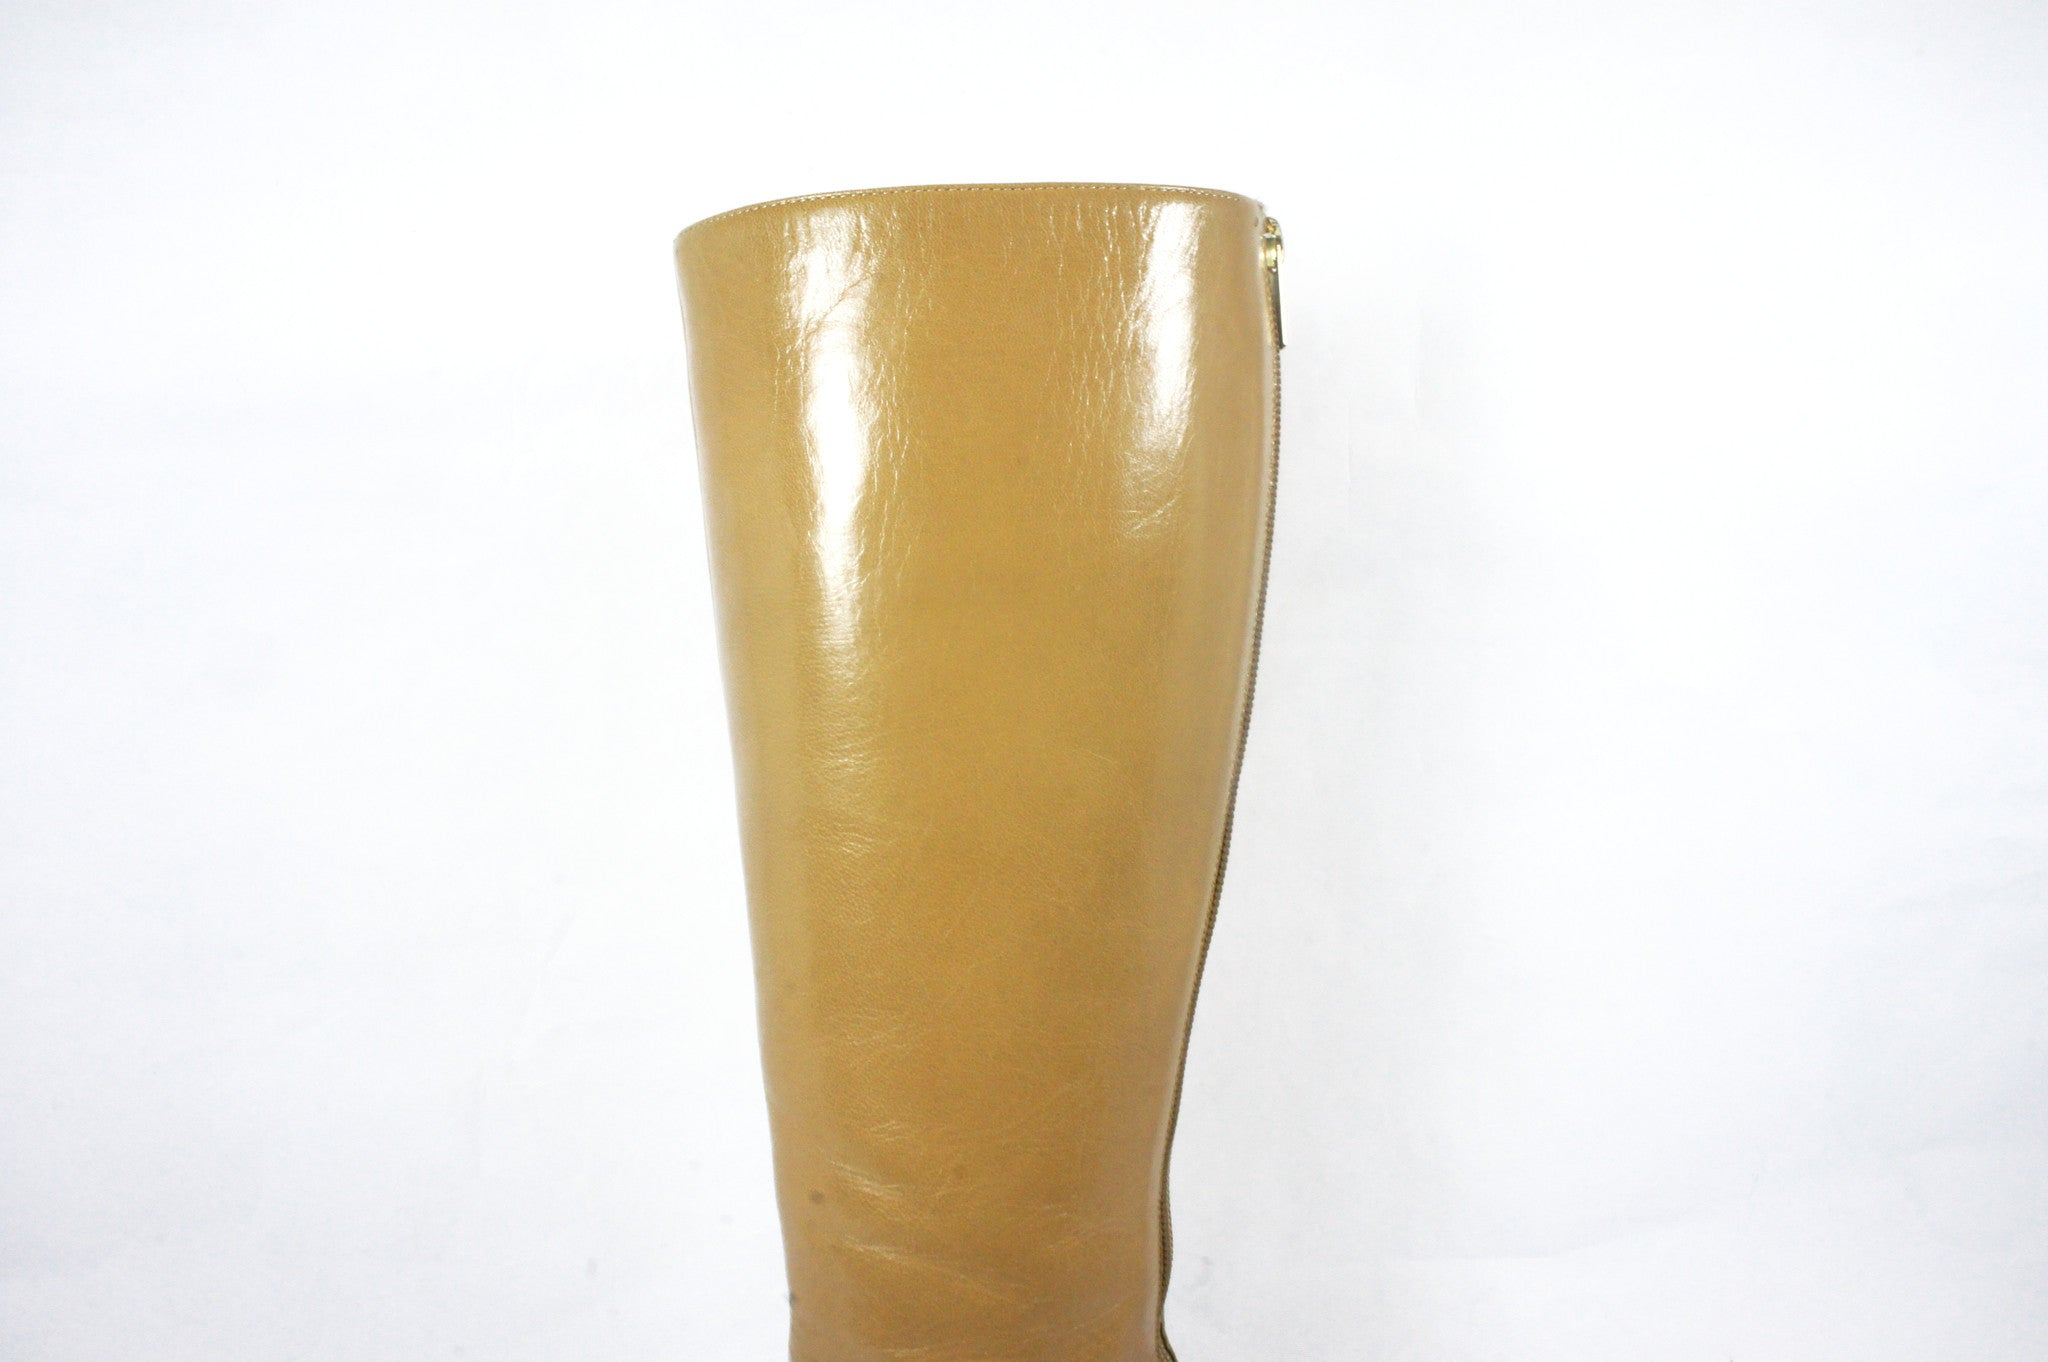 Jimmy Choo Beige Knee High Boots (Size 36.5) - Encore Consignment - 7